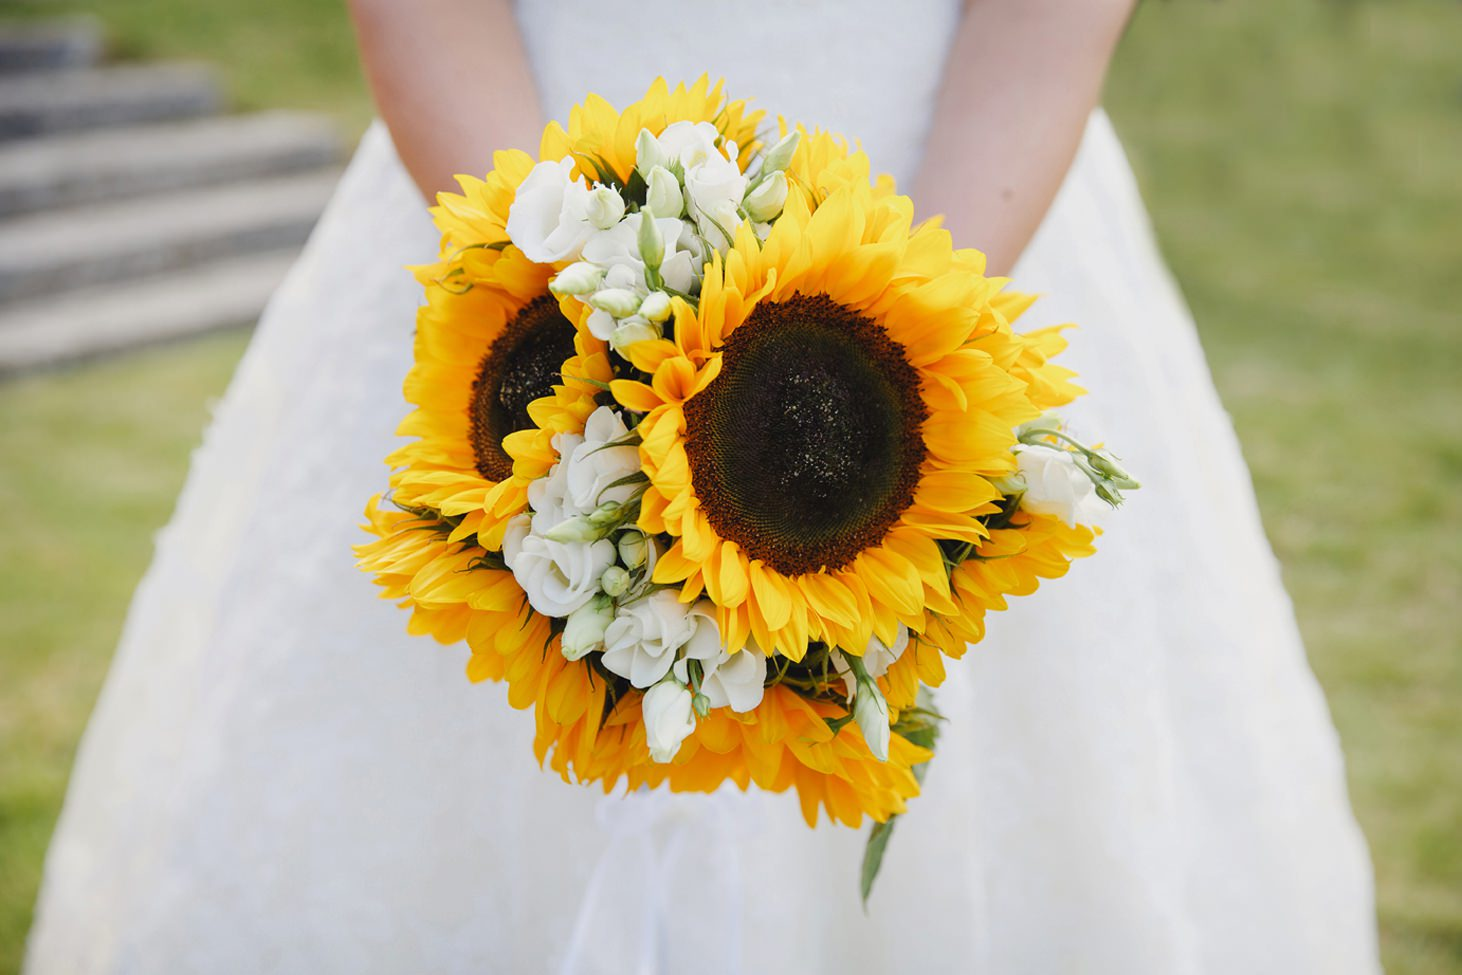 Wycombe Abbey wedding photography bride's sunflower bouquet